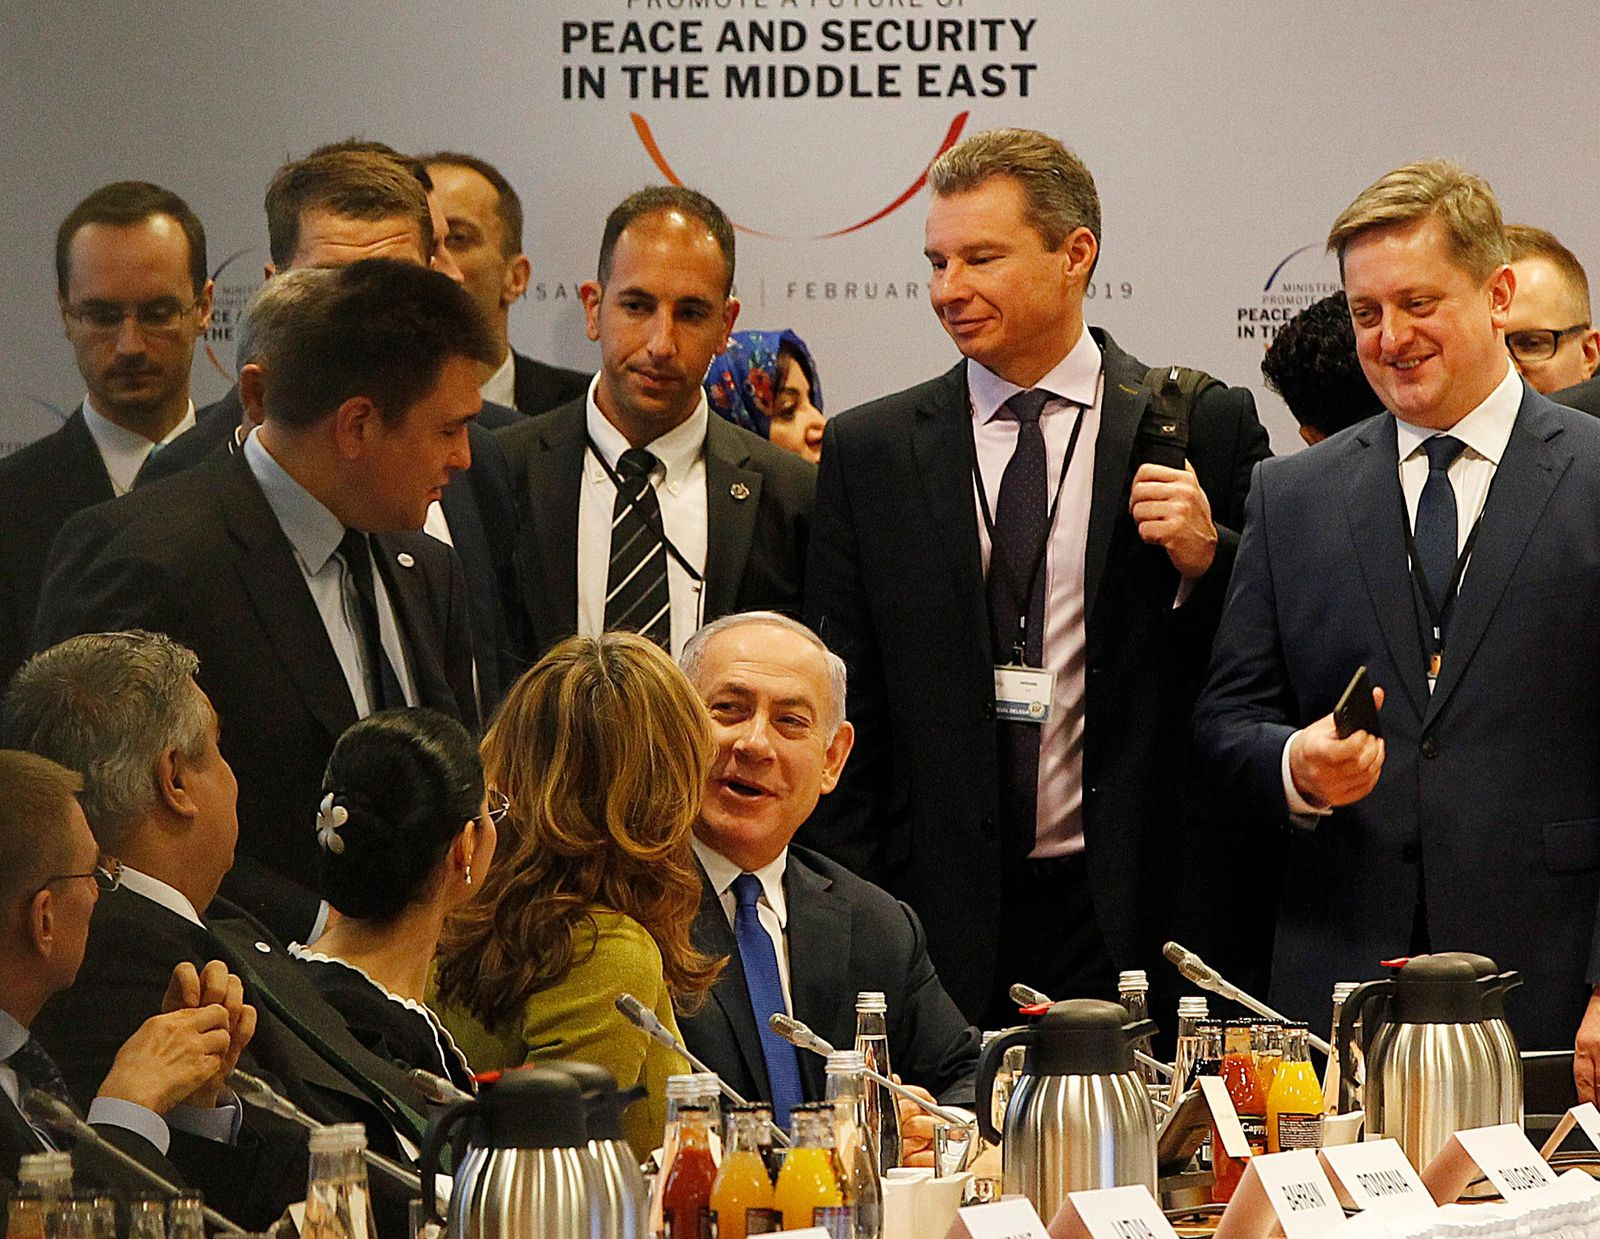 Israeli Prime Minister Benjamin Netanyahu, center, arrives for a session at the conference on Peace and Security in the Middle east in Warsaw, Poland, Thursday, Feb. 14, 2019. (AP Photo/Czarek Sokolowski)